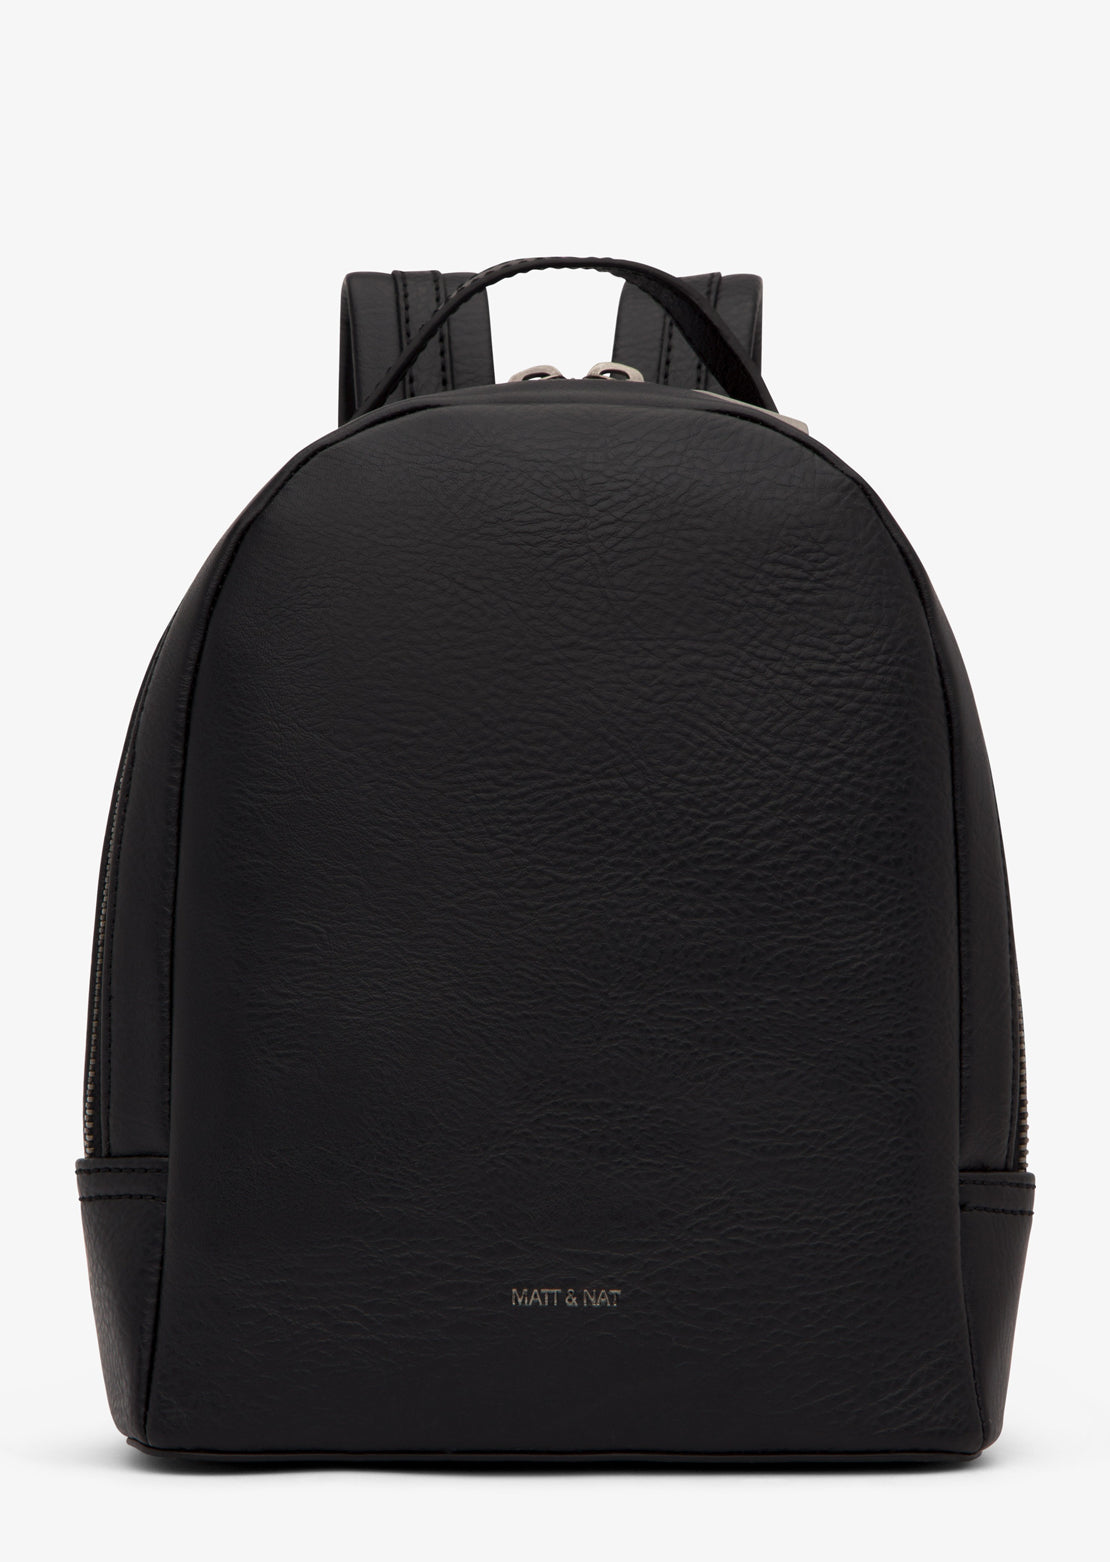 Matt & Nat Olly Dwell Collection Backpack Black